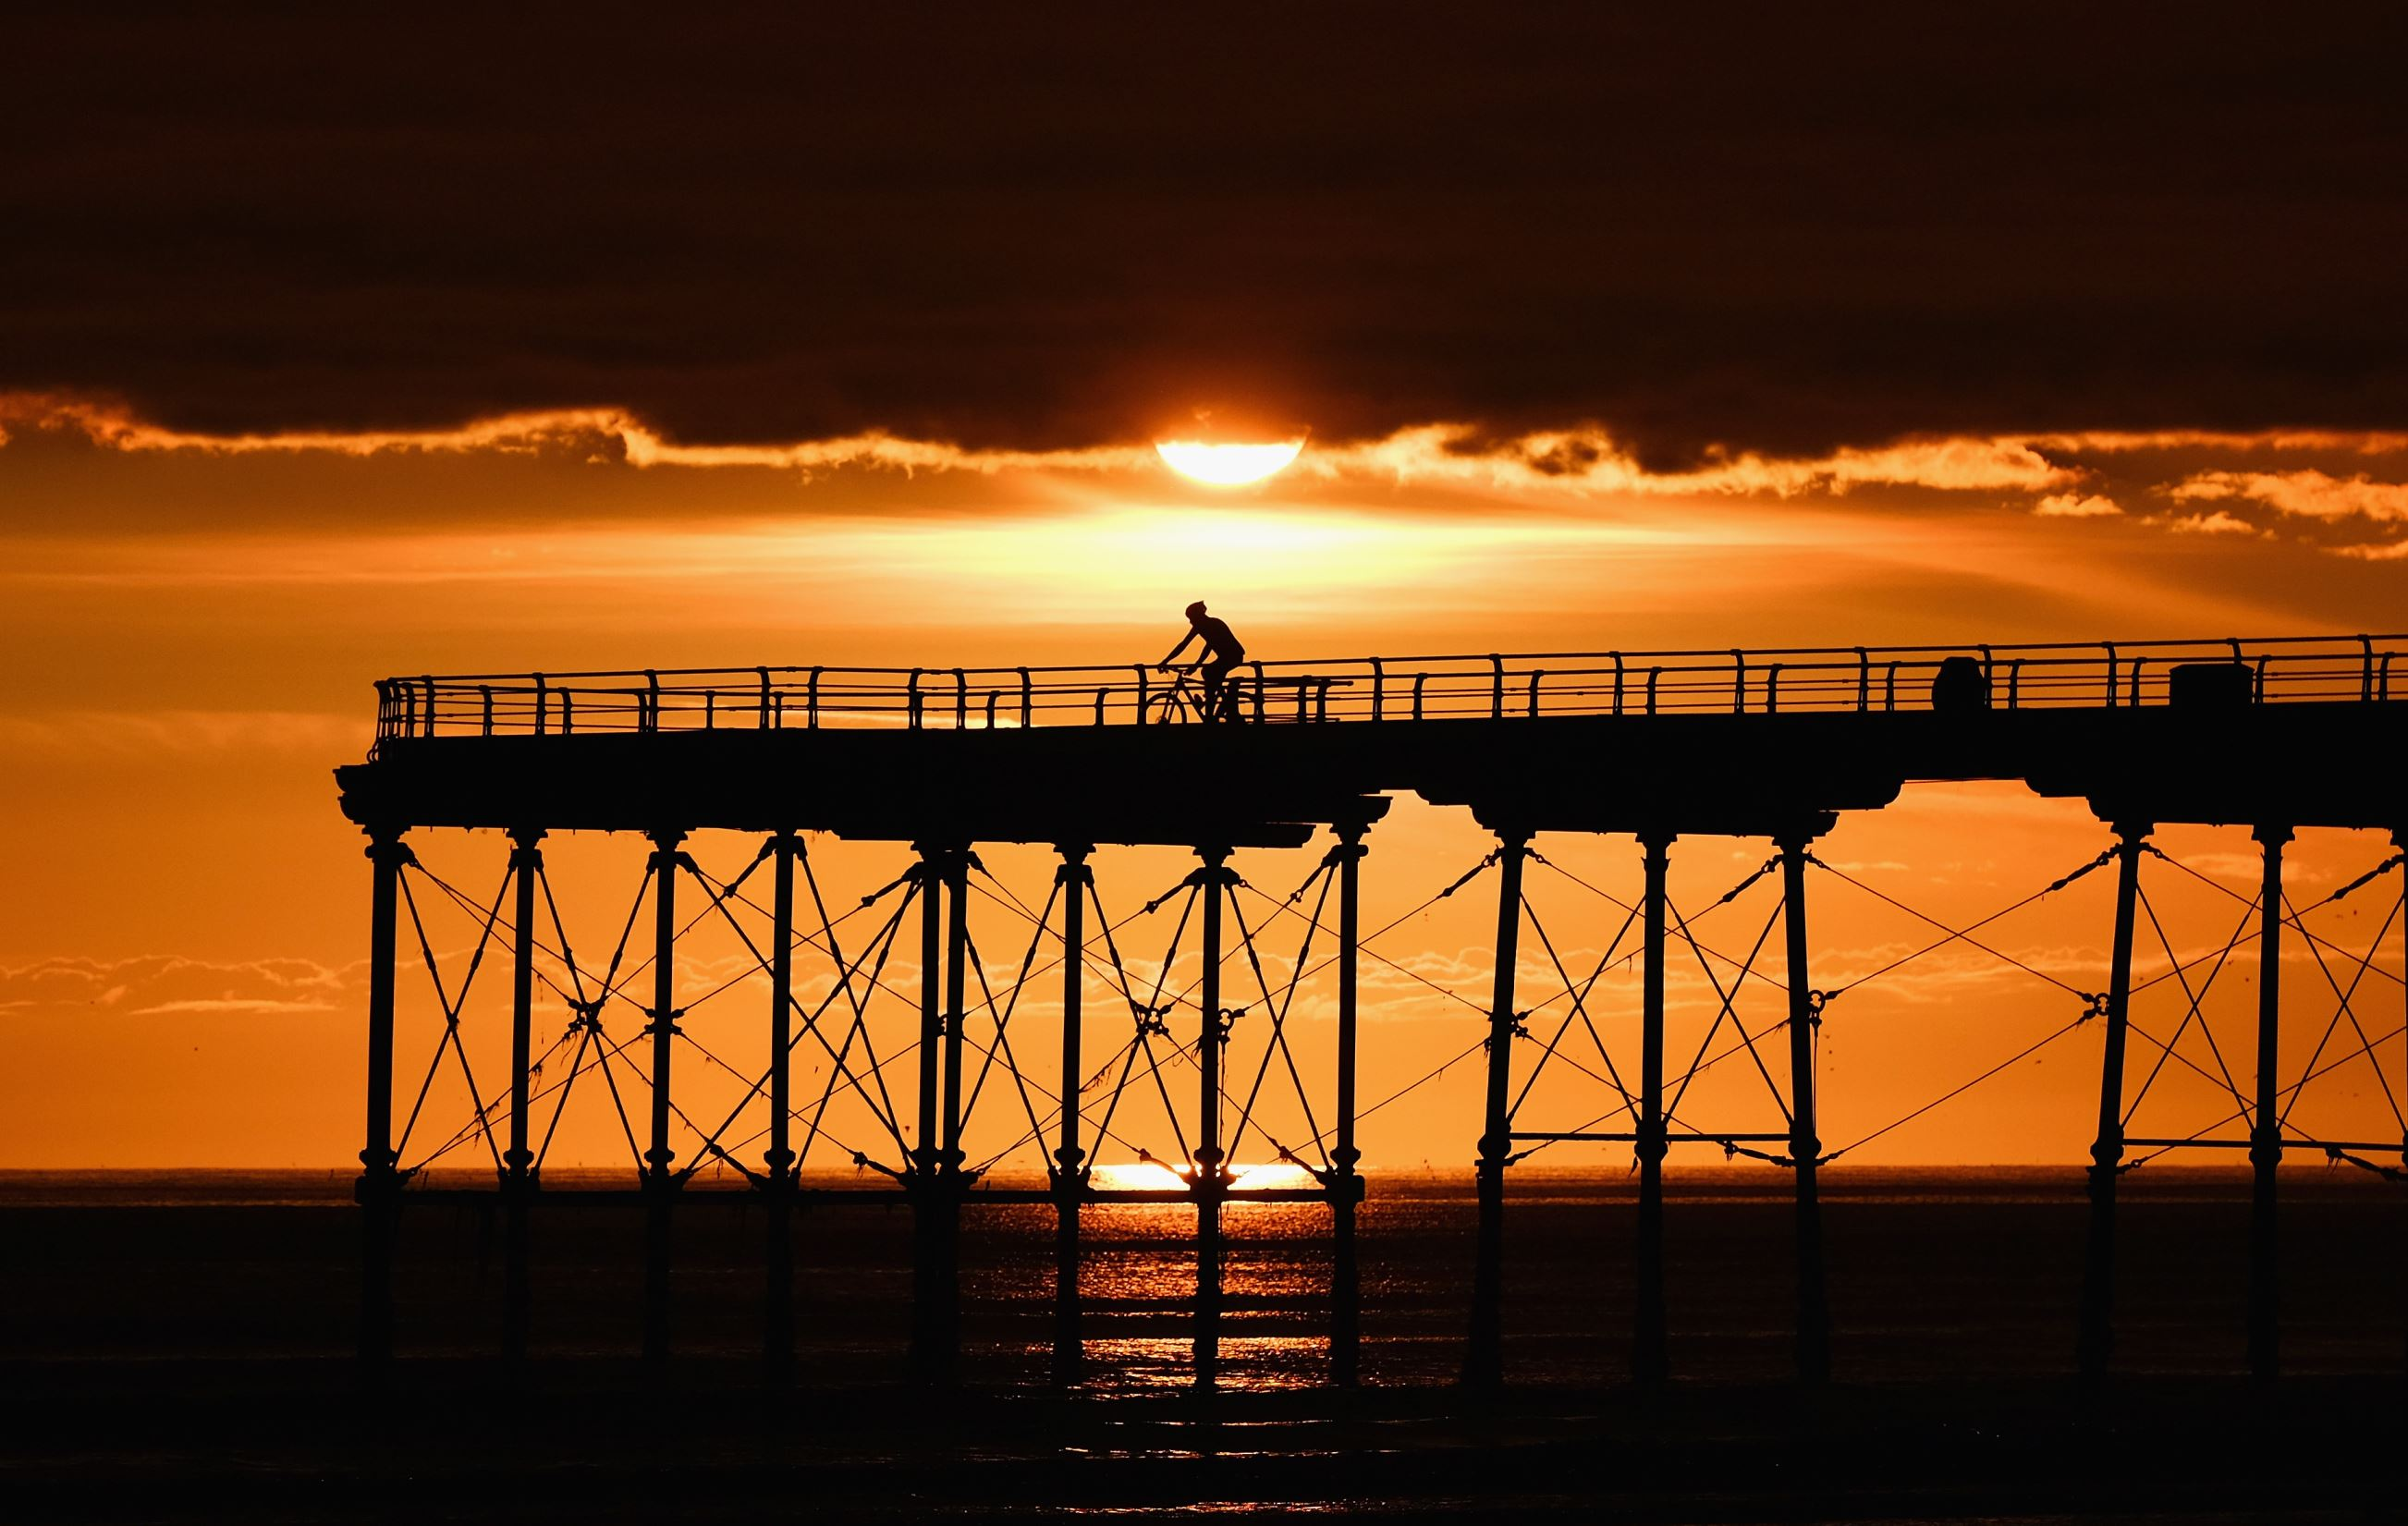 Слайд 72 из 86: SALTBURN-BY-THE-SEA, ENGLAND - AUGUST 15: A cyclist rides to the end of the pier as the sun rises behind clouds on August 15, 2016 in Saltburn-by-the-Sea, England. This week the UK is expected to see some of the hottest days in August for three years wit